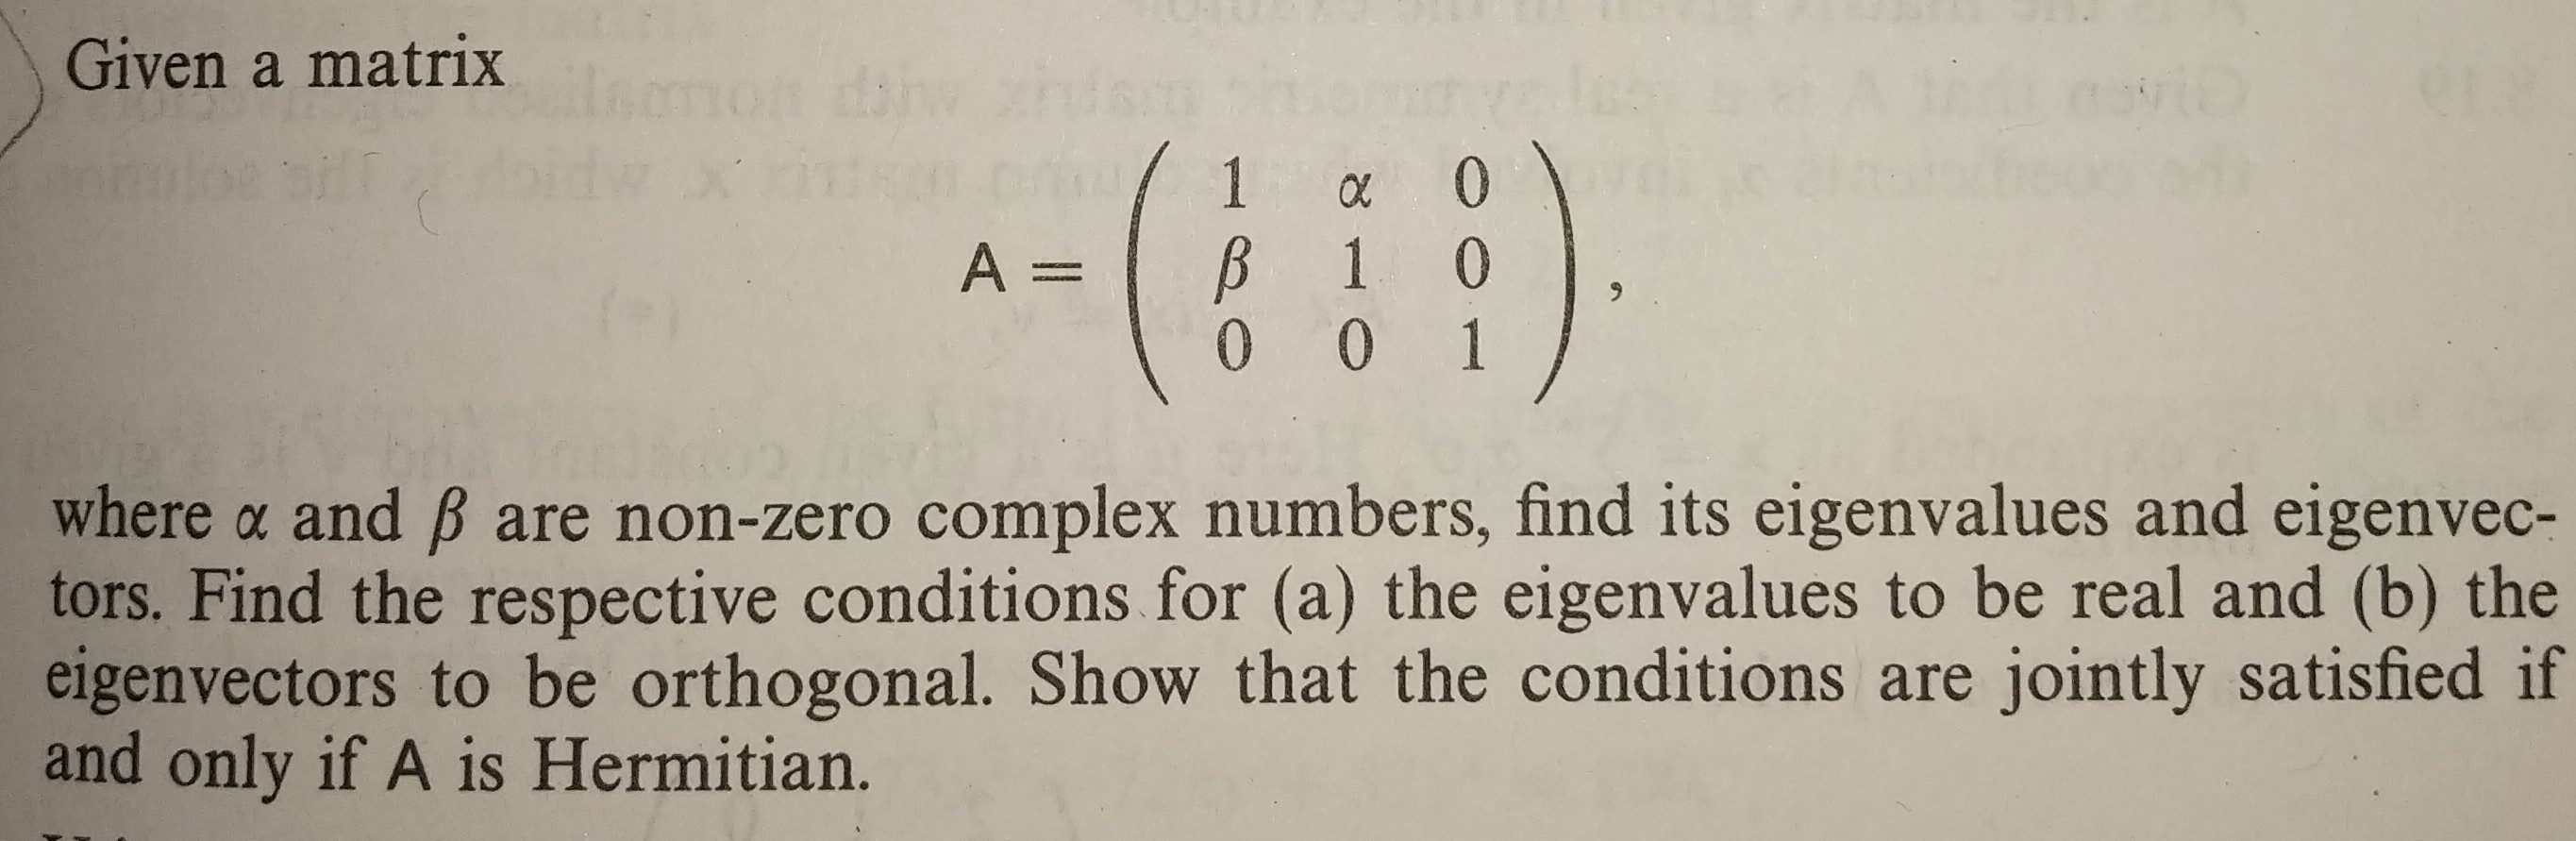 Given a matrix where α and β are non-zero complex numbers, find its eigenvalues and eigenvec- tors. Find the respective conditions for (a) the eigenvalues to be real and (b) the eigenvectors to be orthogonal. Show that the conditions are jointly satisfied if and only if A is Hermitian.